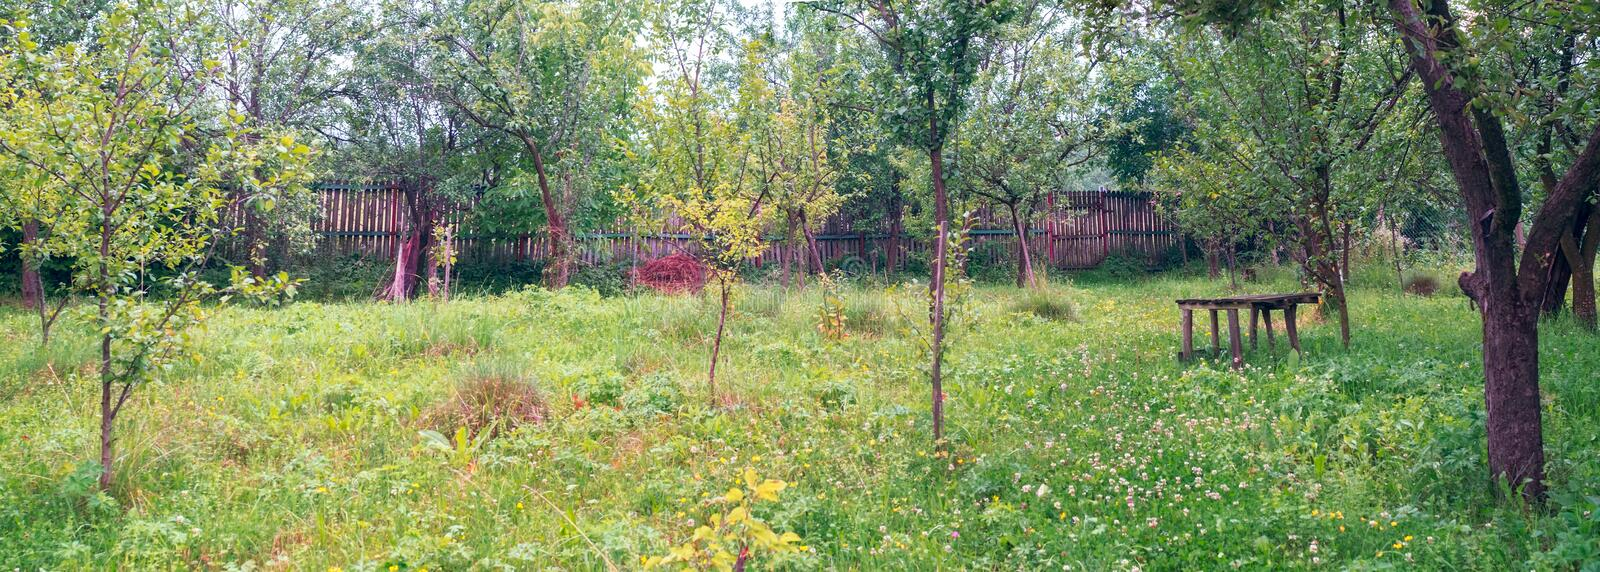 The apple orchard behind the house and an old bench stock photography